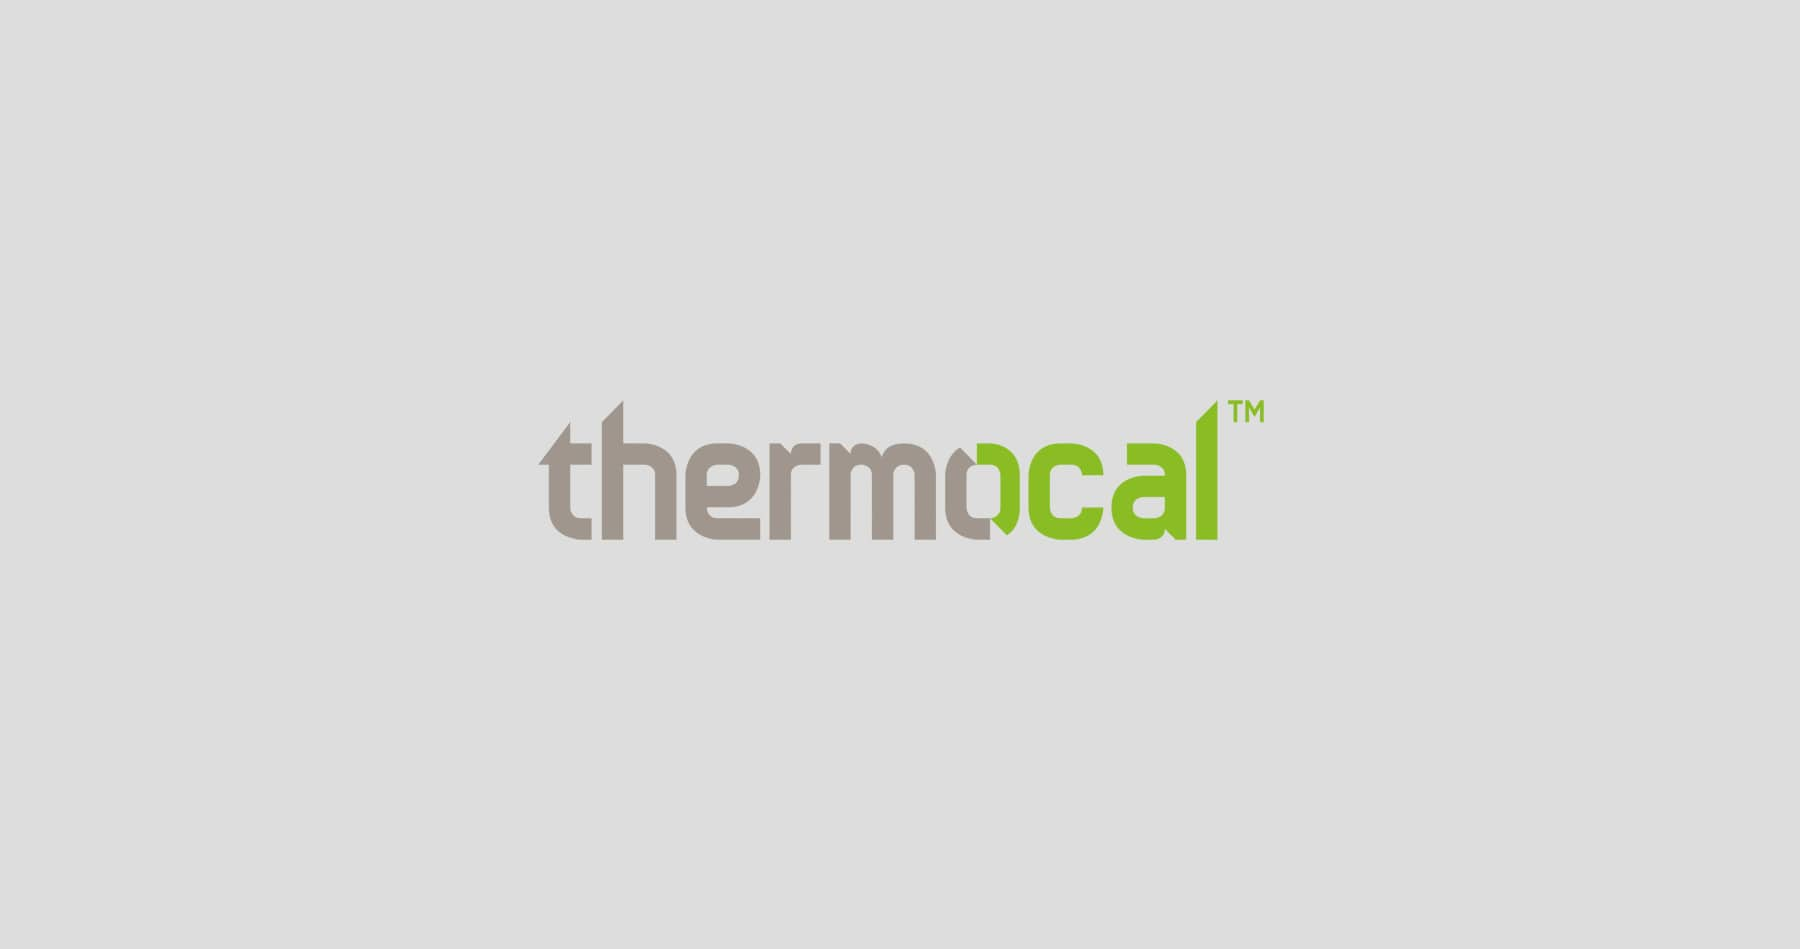 thermocal_1n